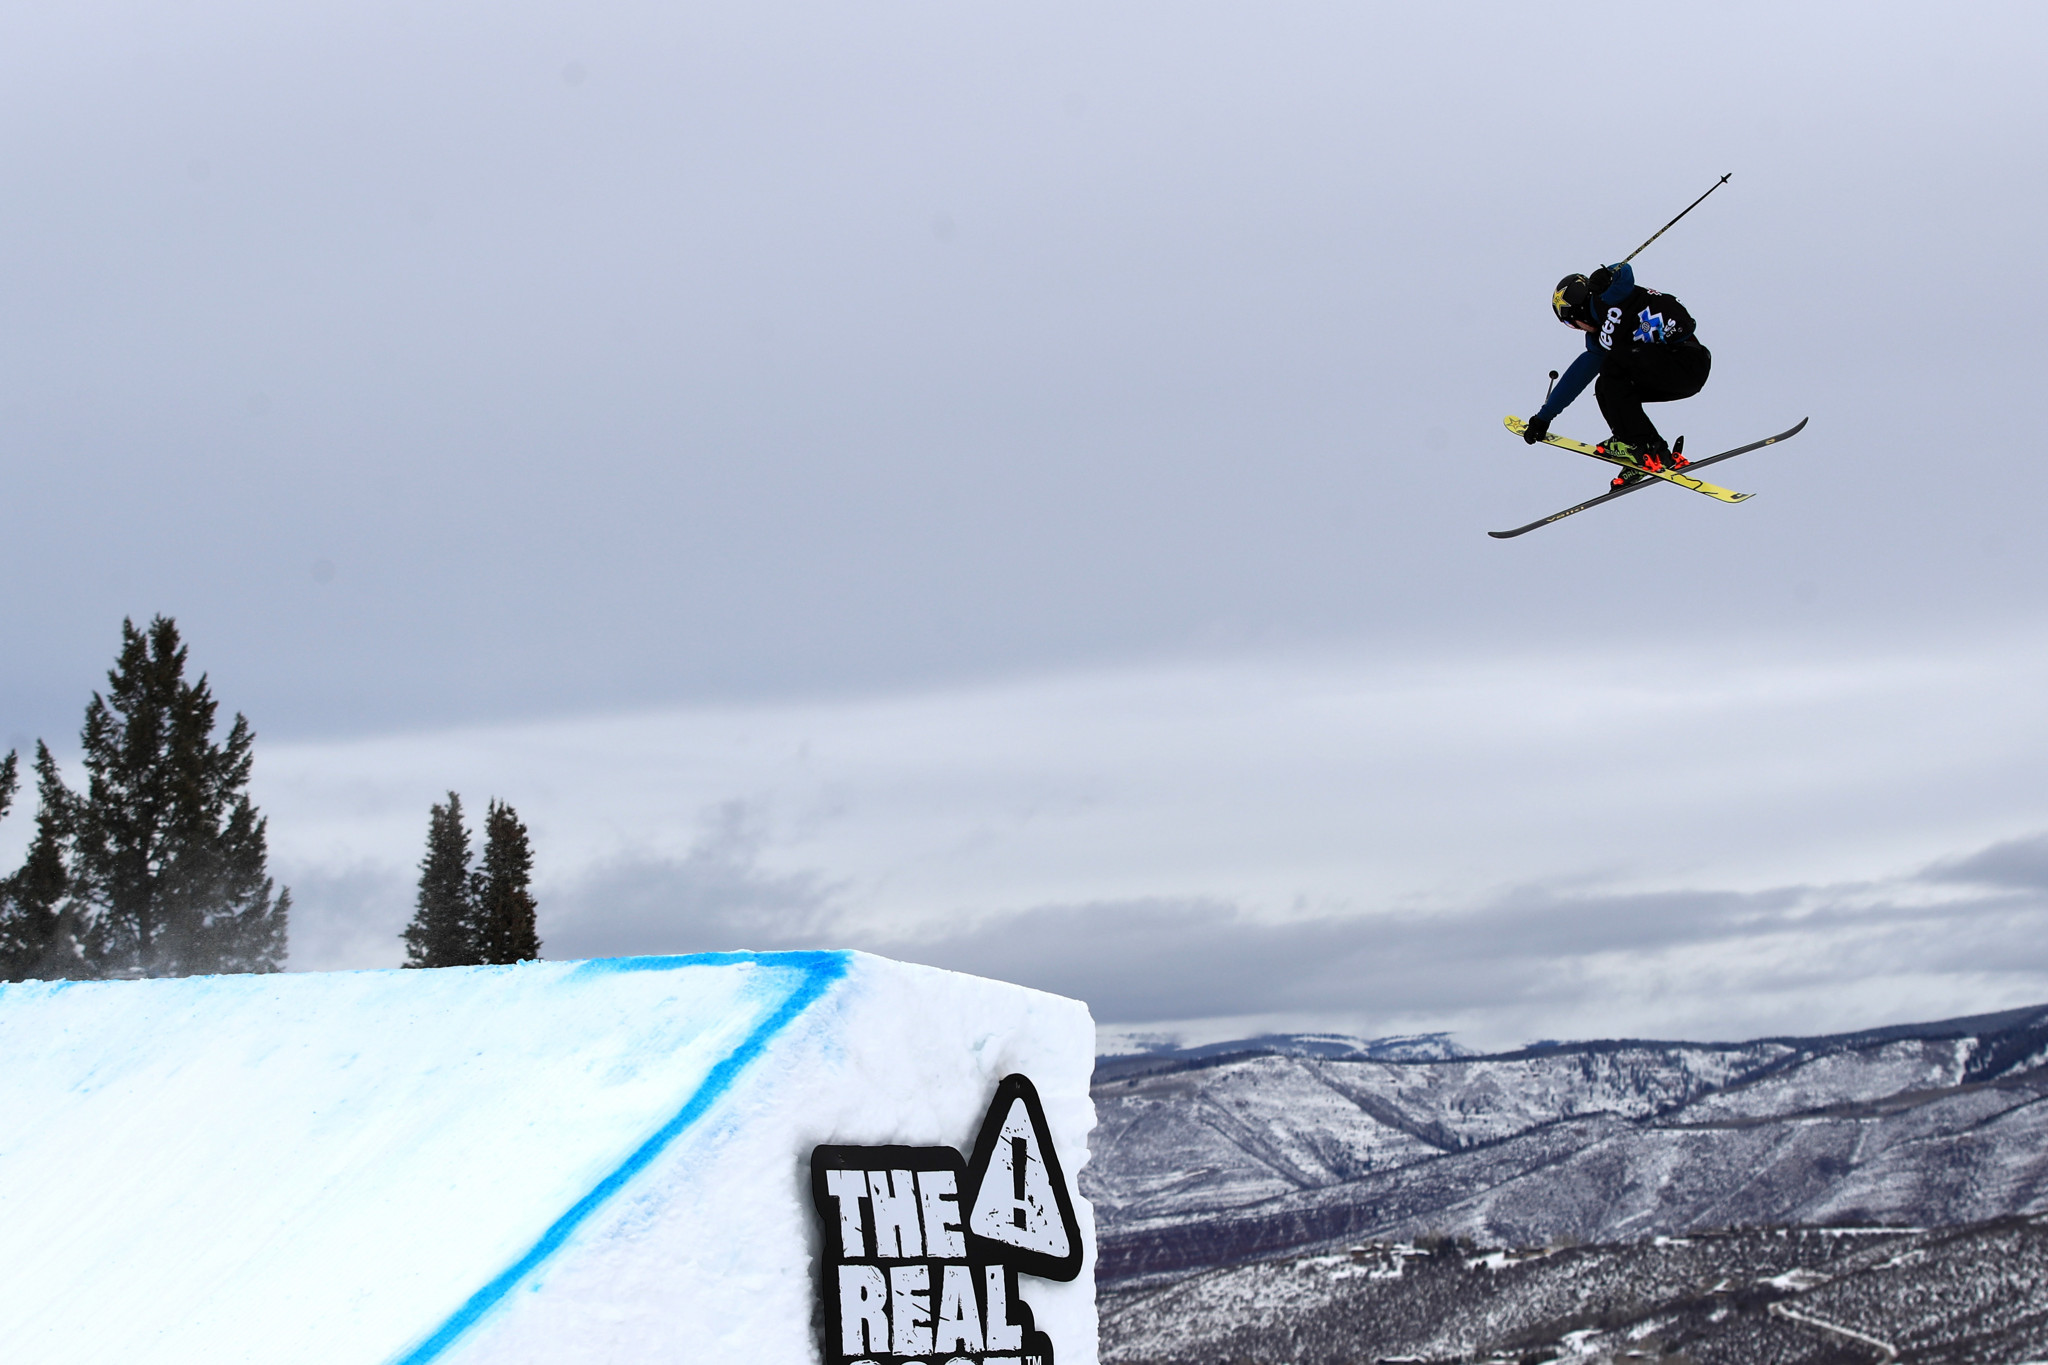 X Games Aspen 2021 set to get underway behind closed doors